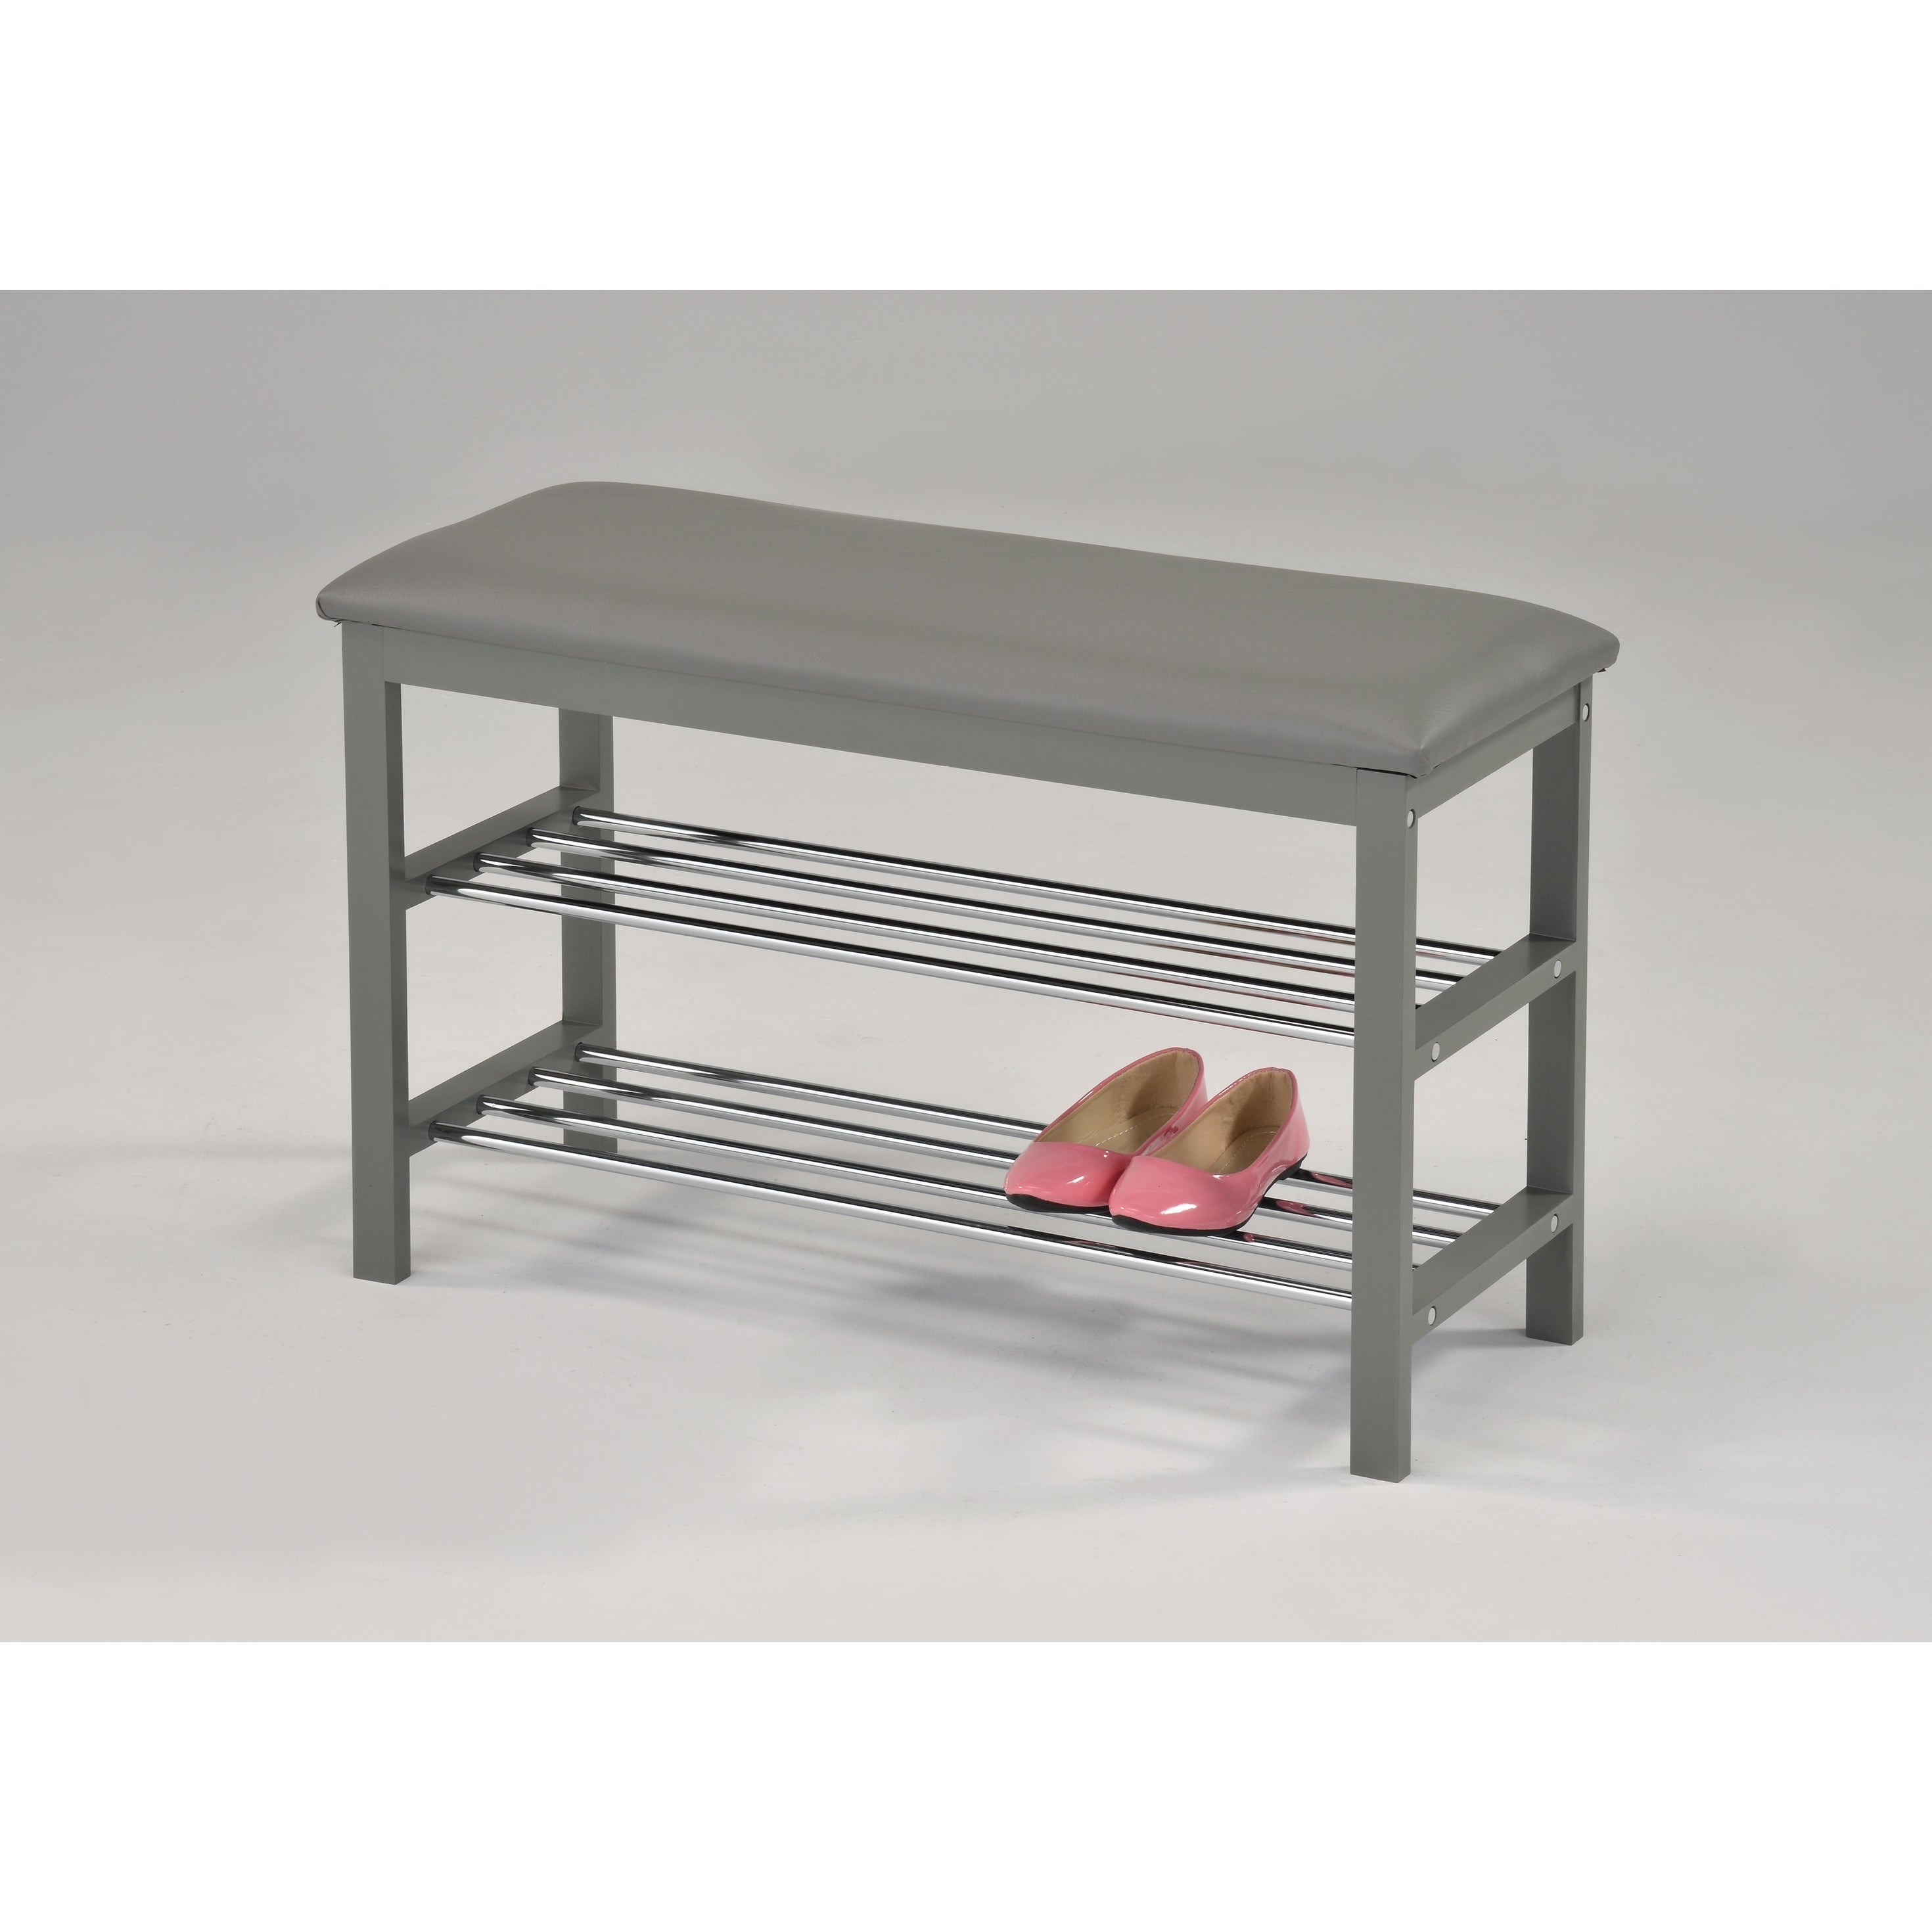 Shop Contemporary Shoe Rack Grey Chrome Free Shipping Today